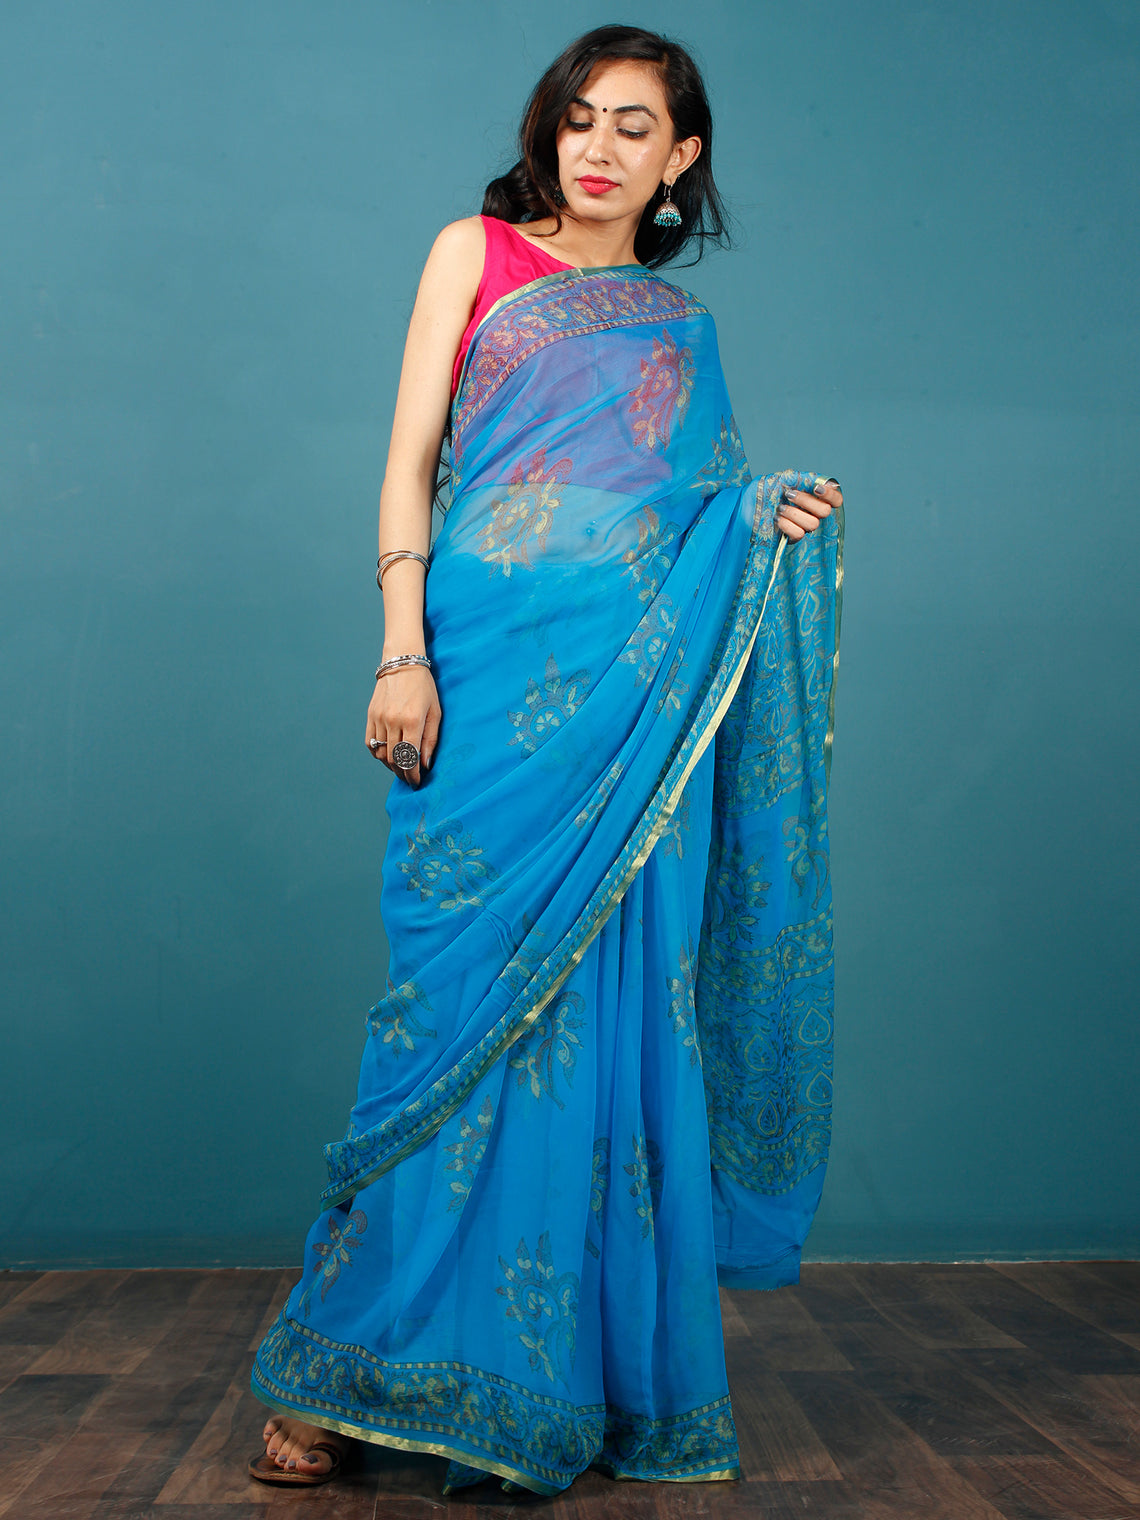 Blue Green Yellow Hand Block Printed Chiffon Saree with Zari Border - S031702808